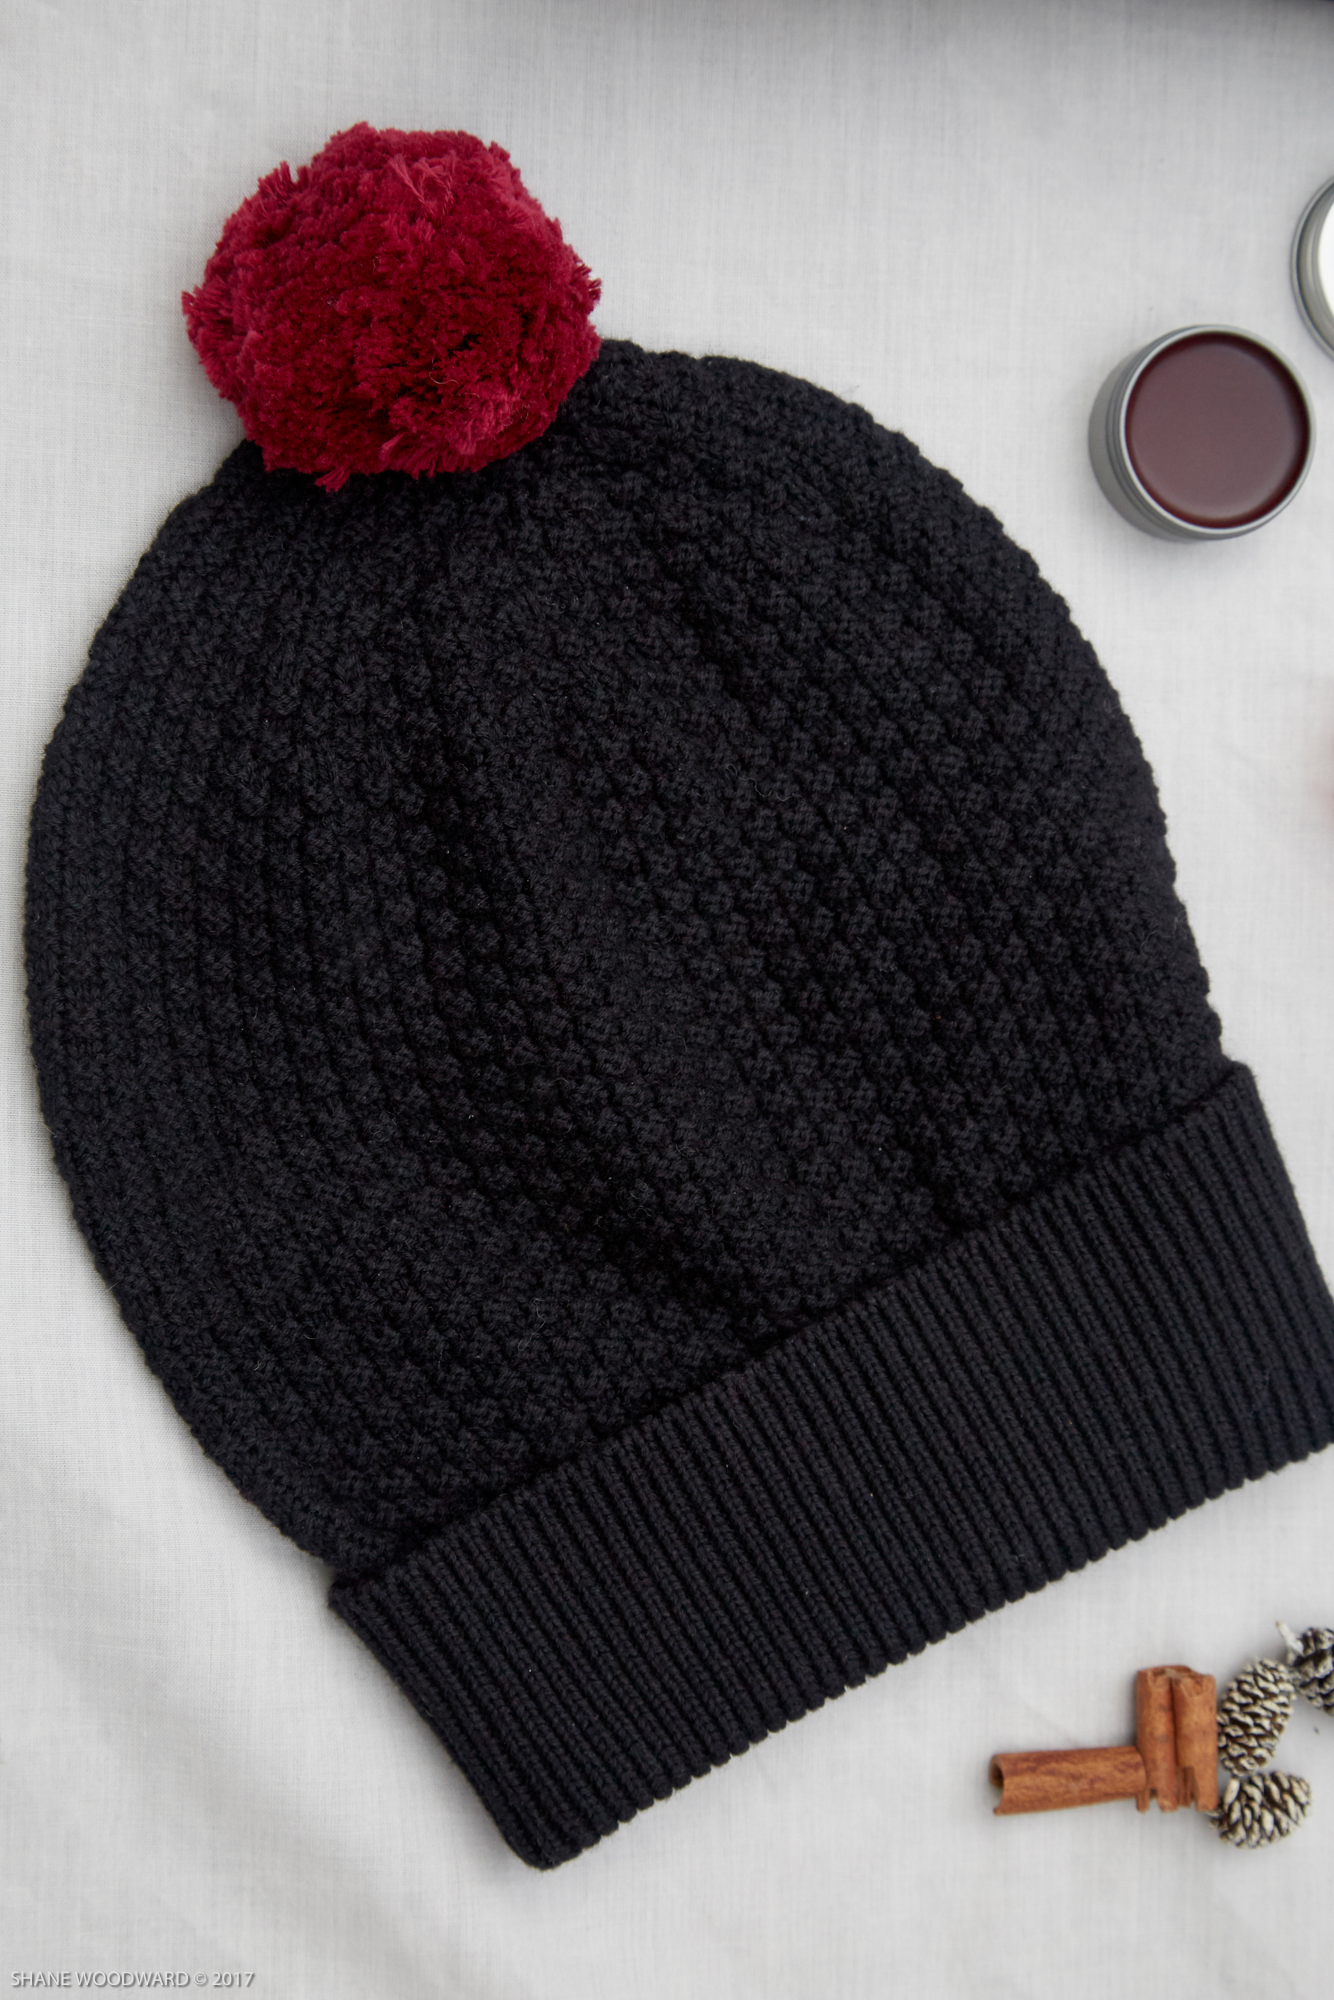 Beanie Hat Thought Clothing